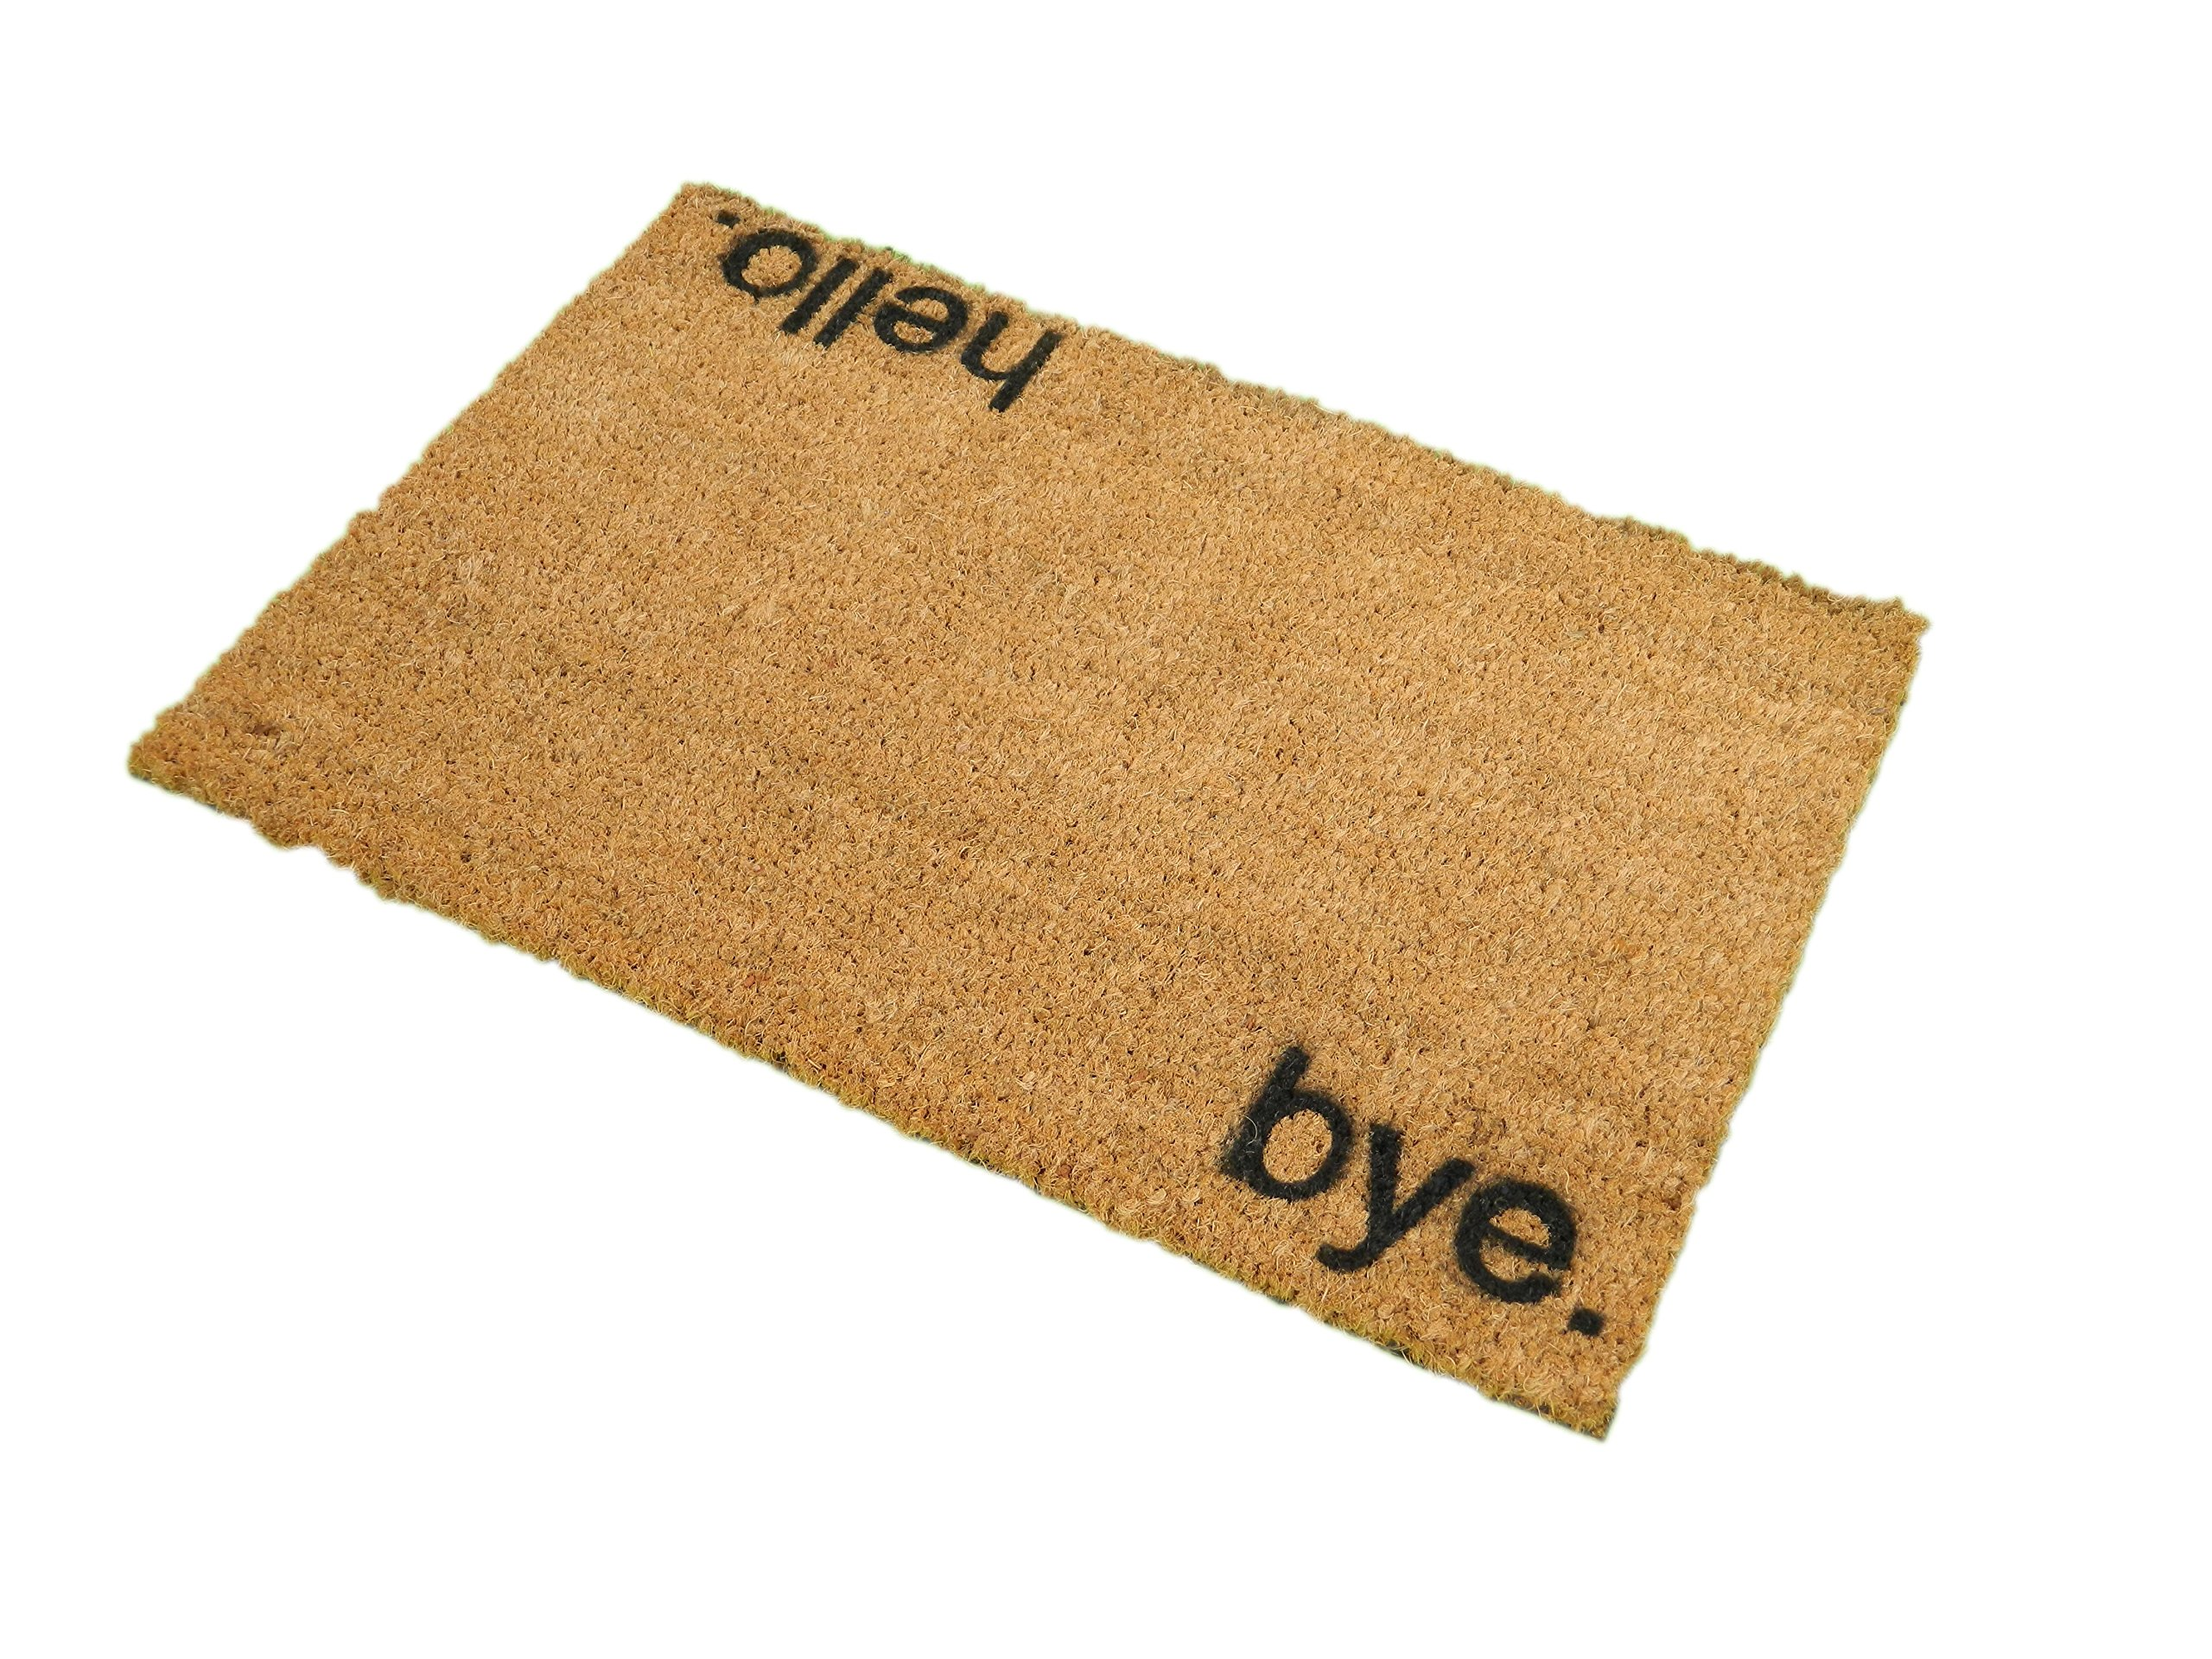 CKB Ltd Hello, Bye Novelty Doormat Unique Doormats Front/Back Door Mats Made With A Non-Slip Pvc Backing - Natural Coir - Indoor & Outdoor